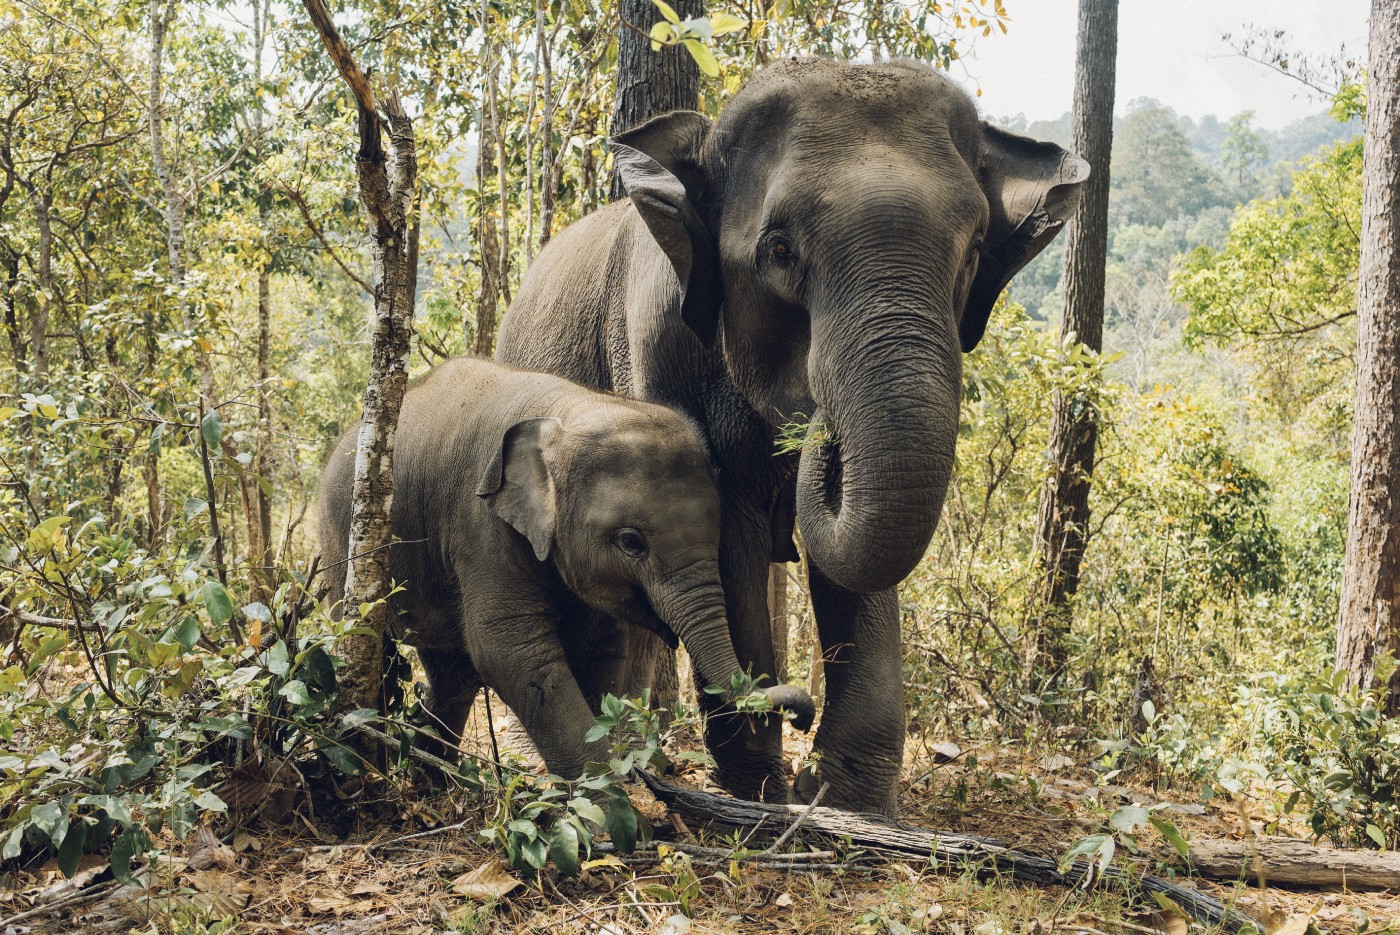 A mother and baby elephant walking through a forest.